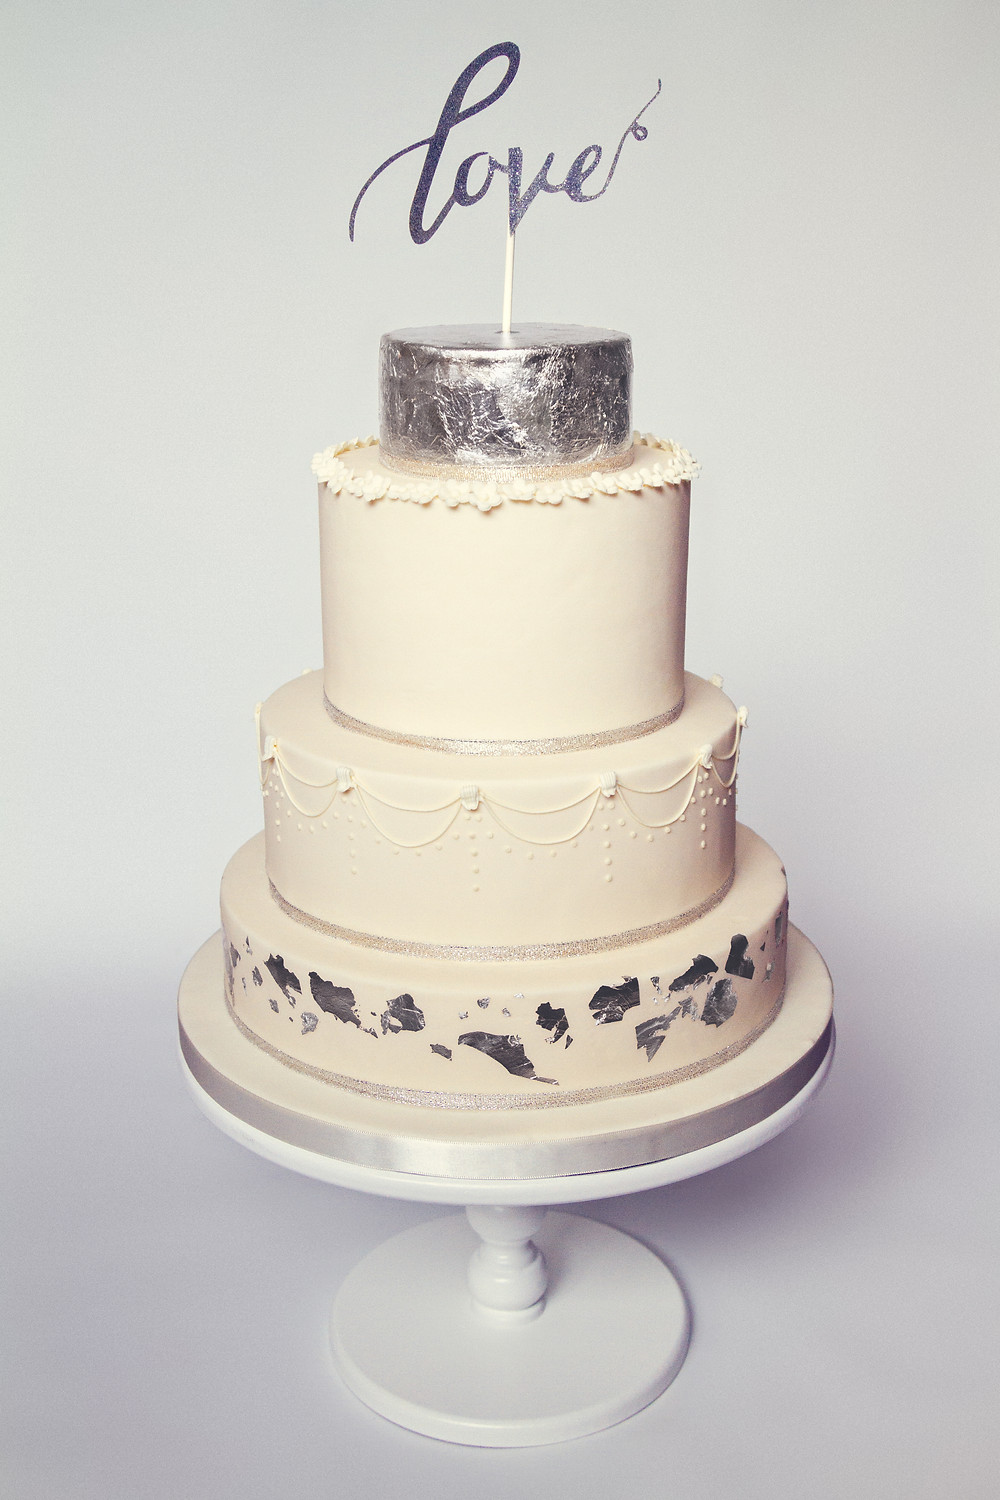 Metallic wedding cake with silver leaf